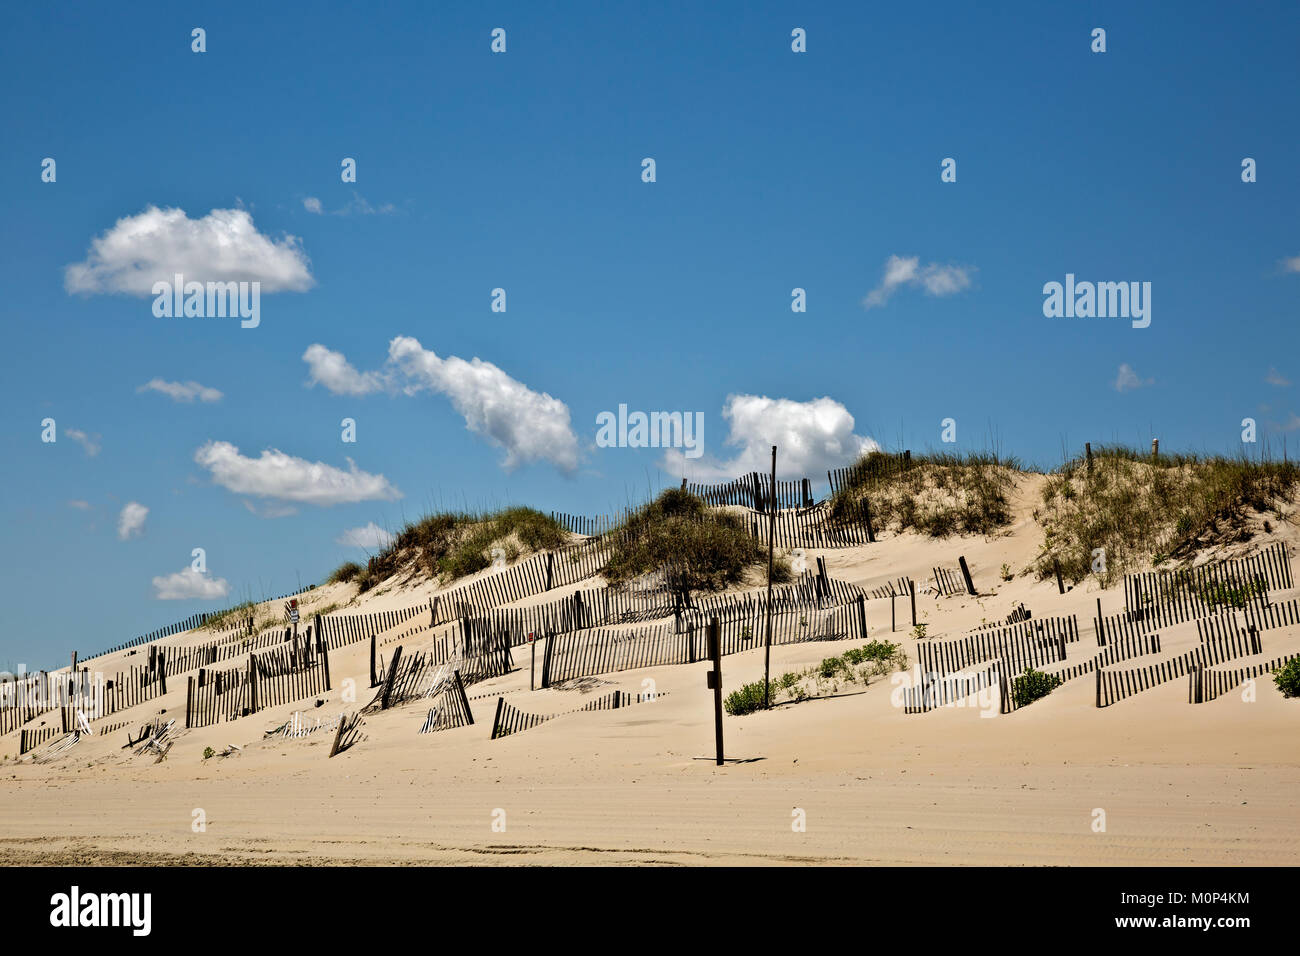 NC01409-00...NORTH CAROLINA - Sand fences attempt to stabilize a sand dune along the Atlantic Coast at the edge - Stock Image